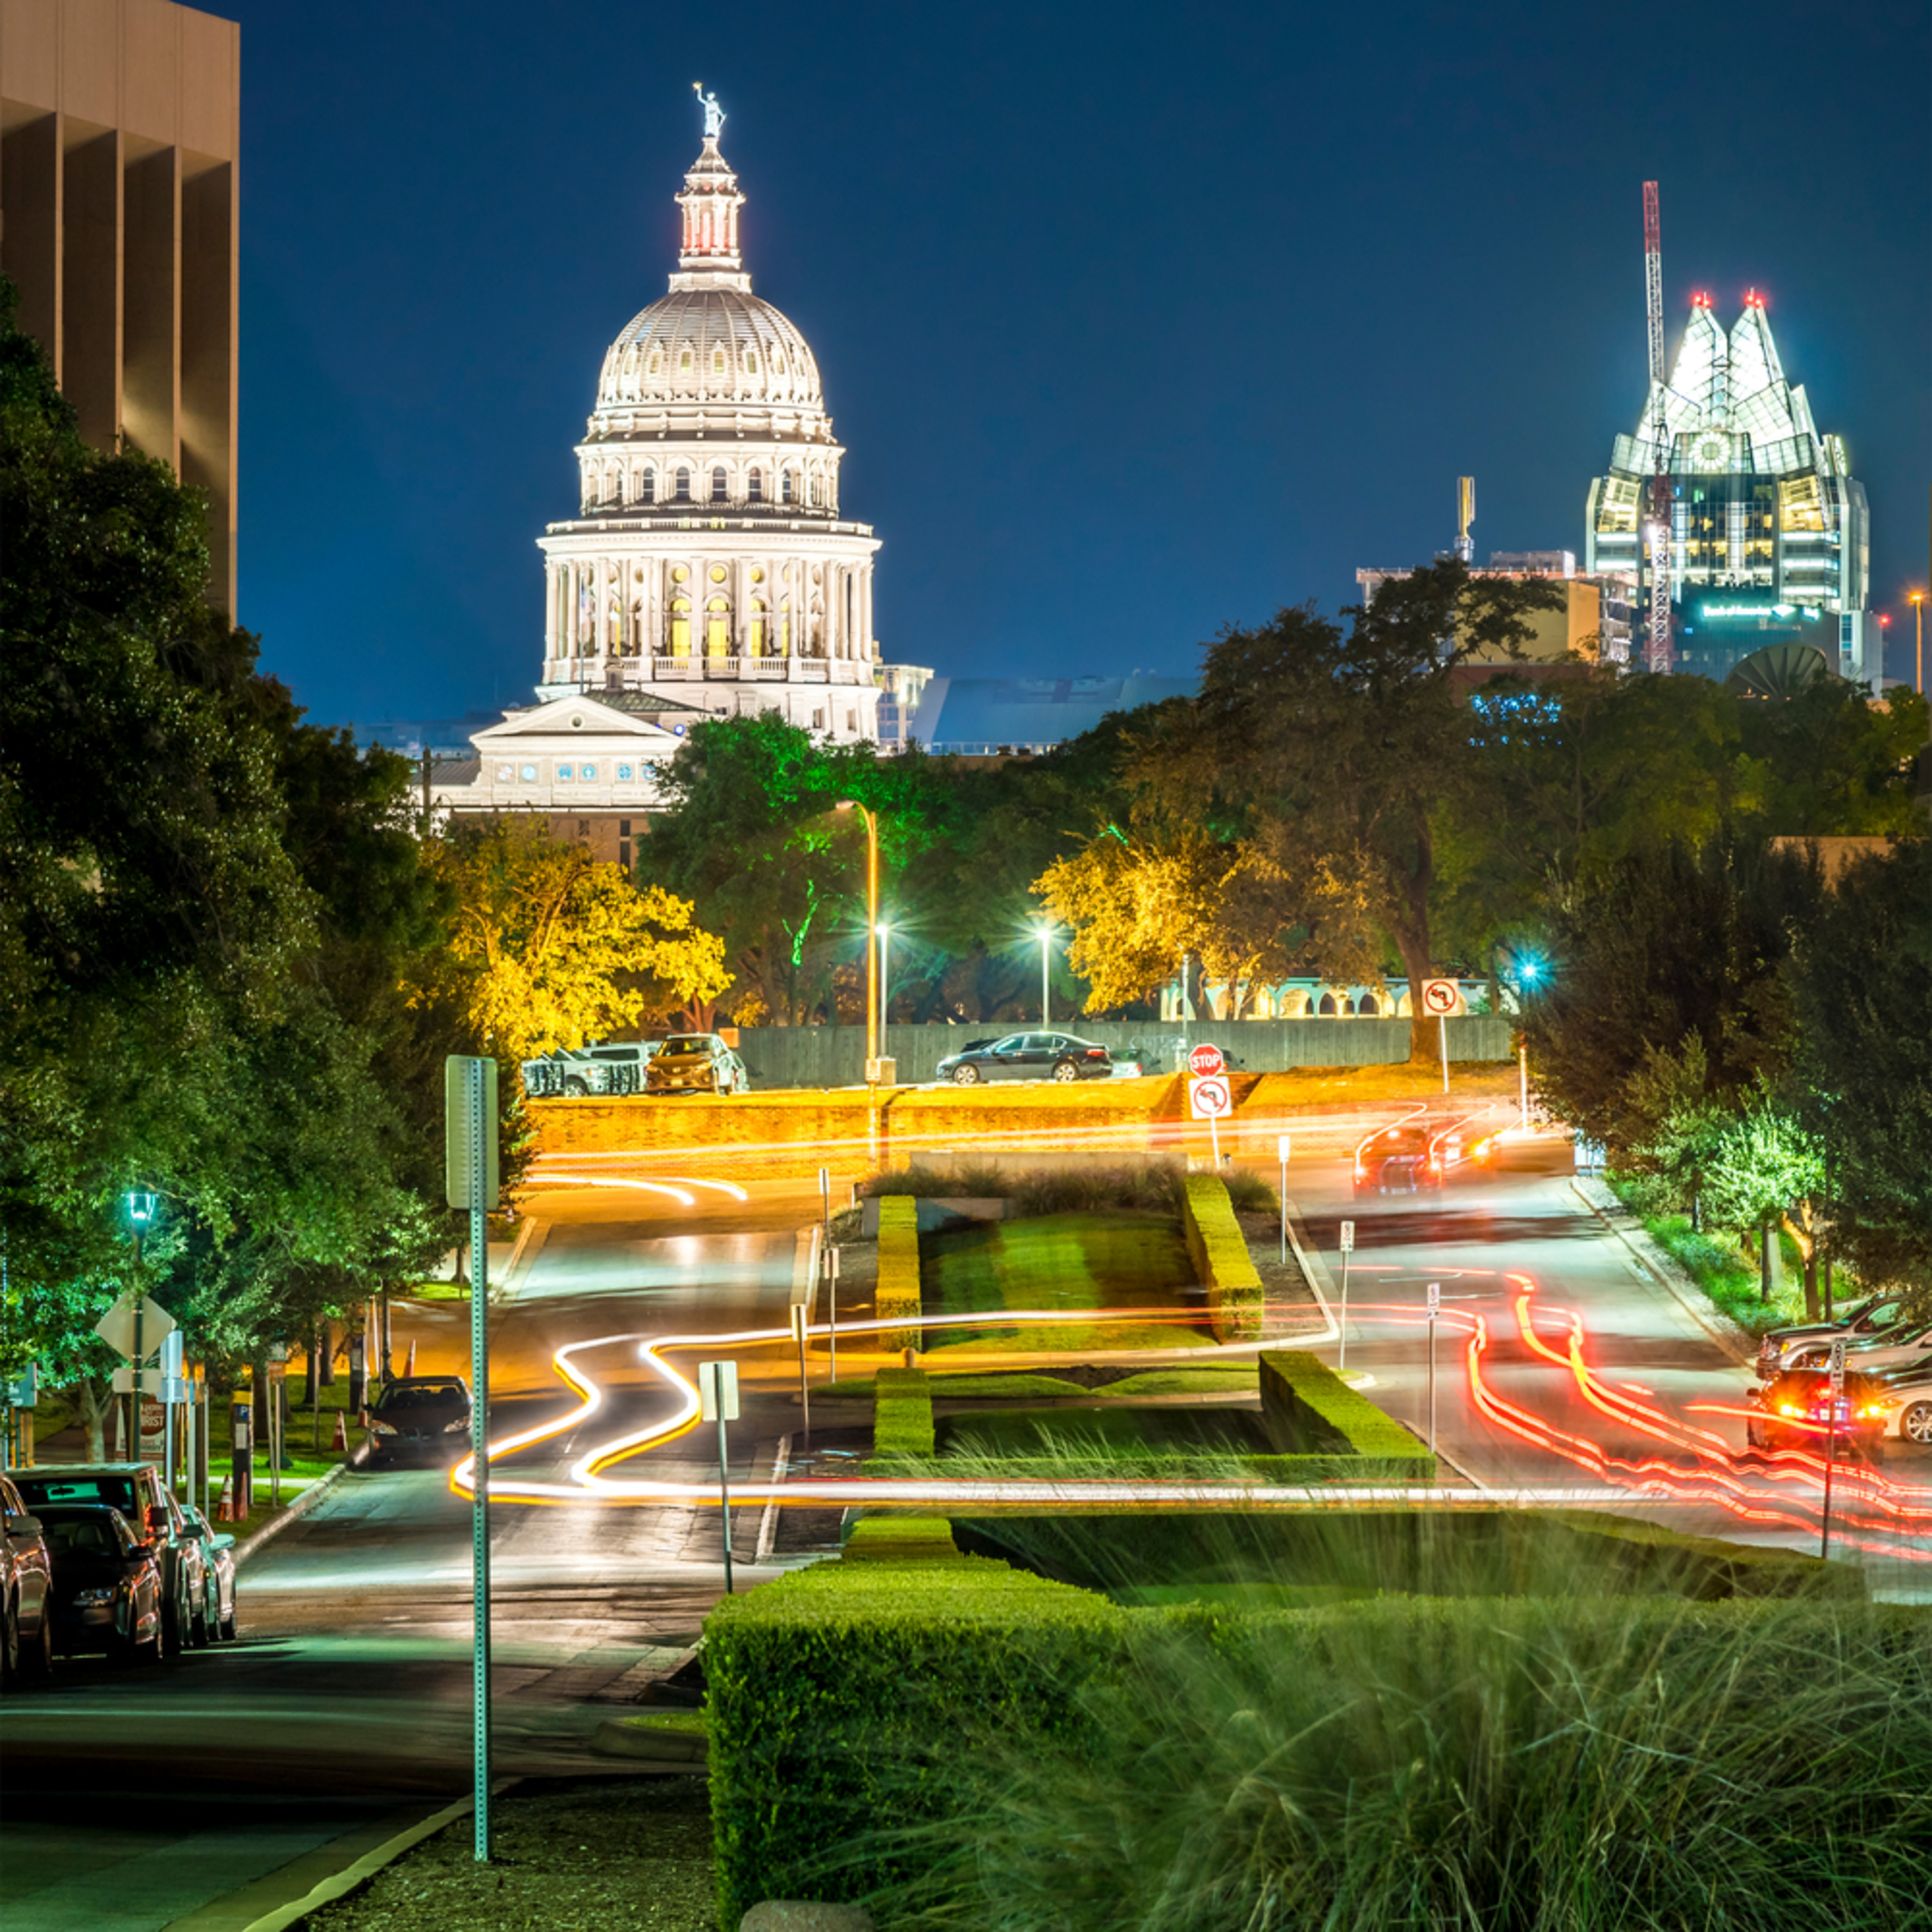 Texas state capitol 1016 1 bwil3r